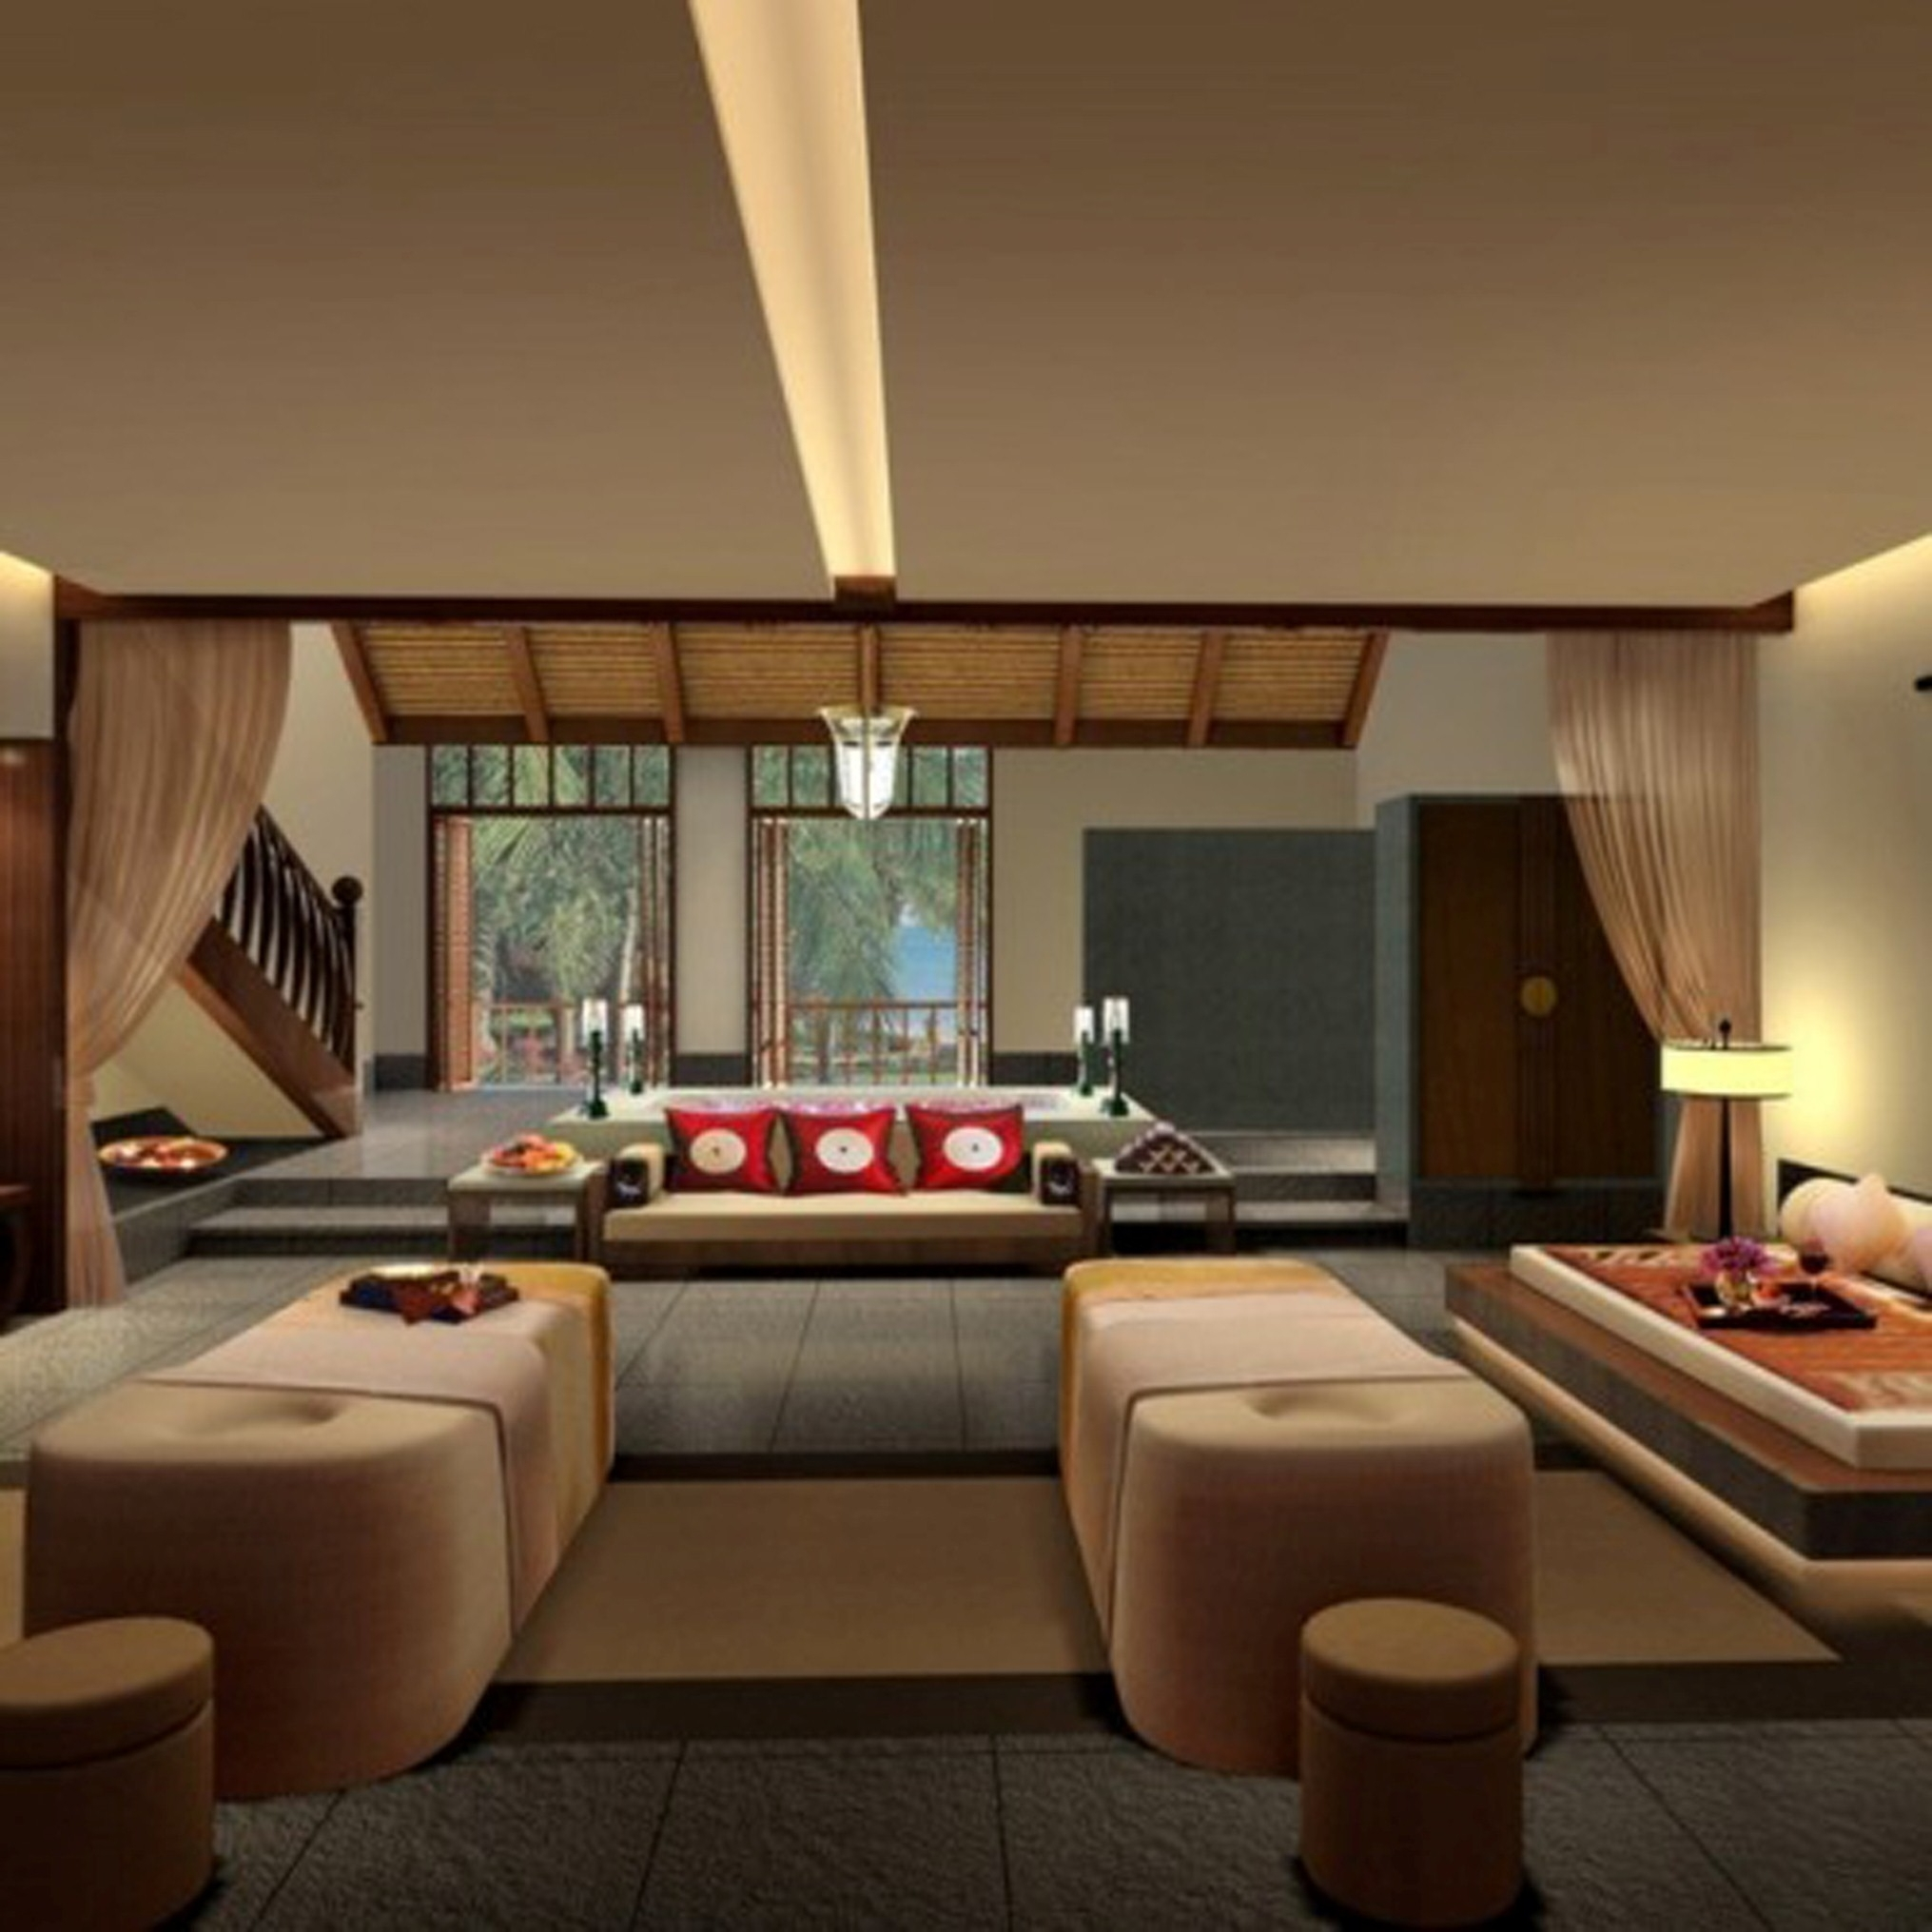 Modern Living Space Design With Divine Ceiling Light Ideas Even Beautiful Pouff Decorate Interior (Image 30 of 30)